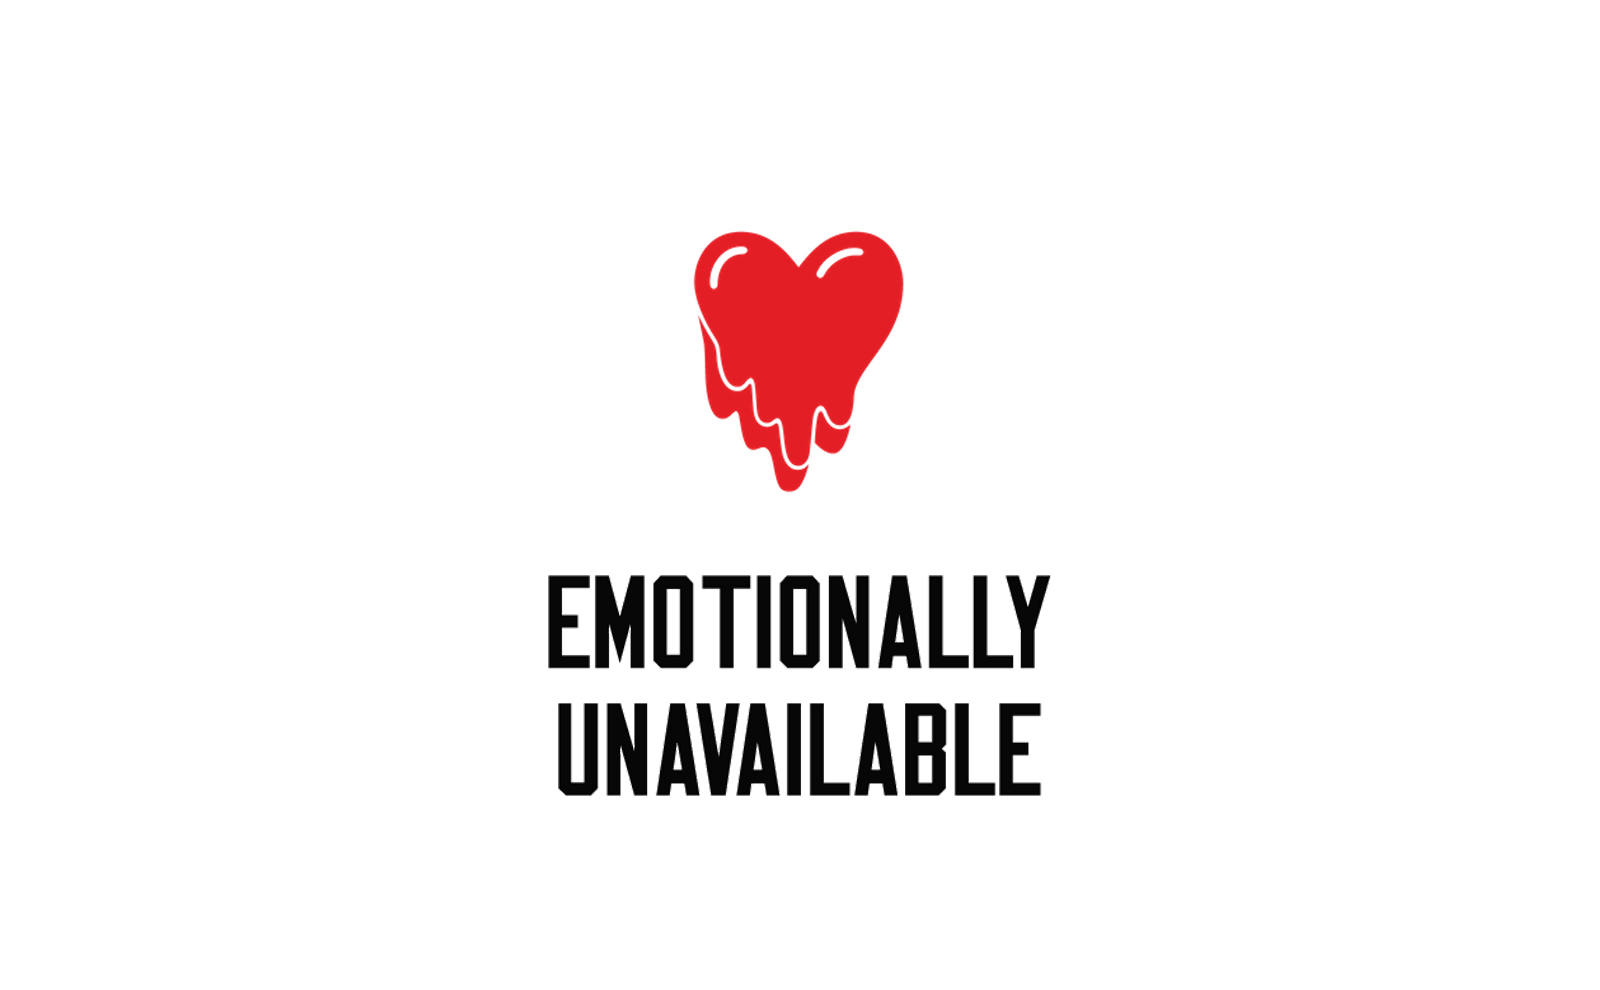 EMOTIONALLY UNAVAILABLE / 20aw